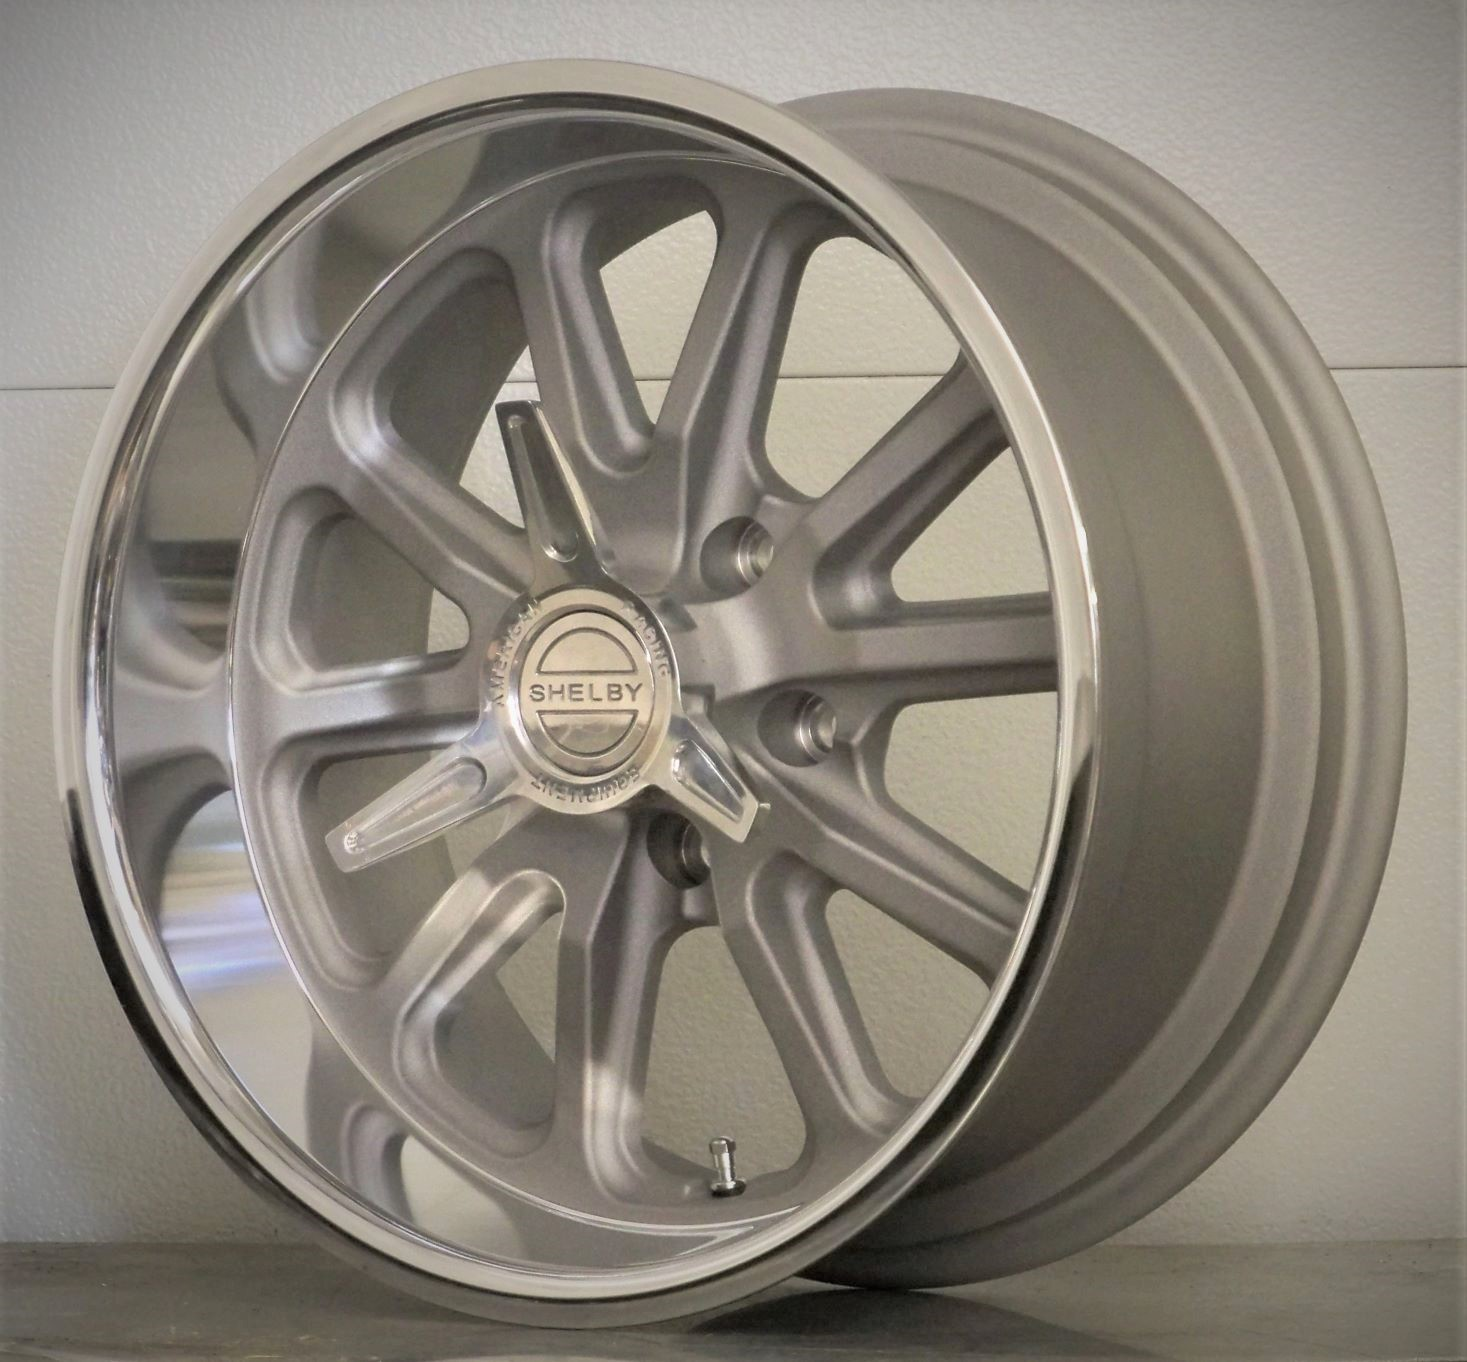 17/18 set of 4 RSS US Mags Shelby spinners silver gray 65-73